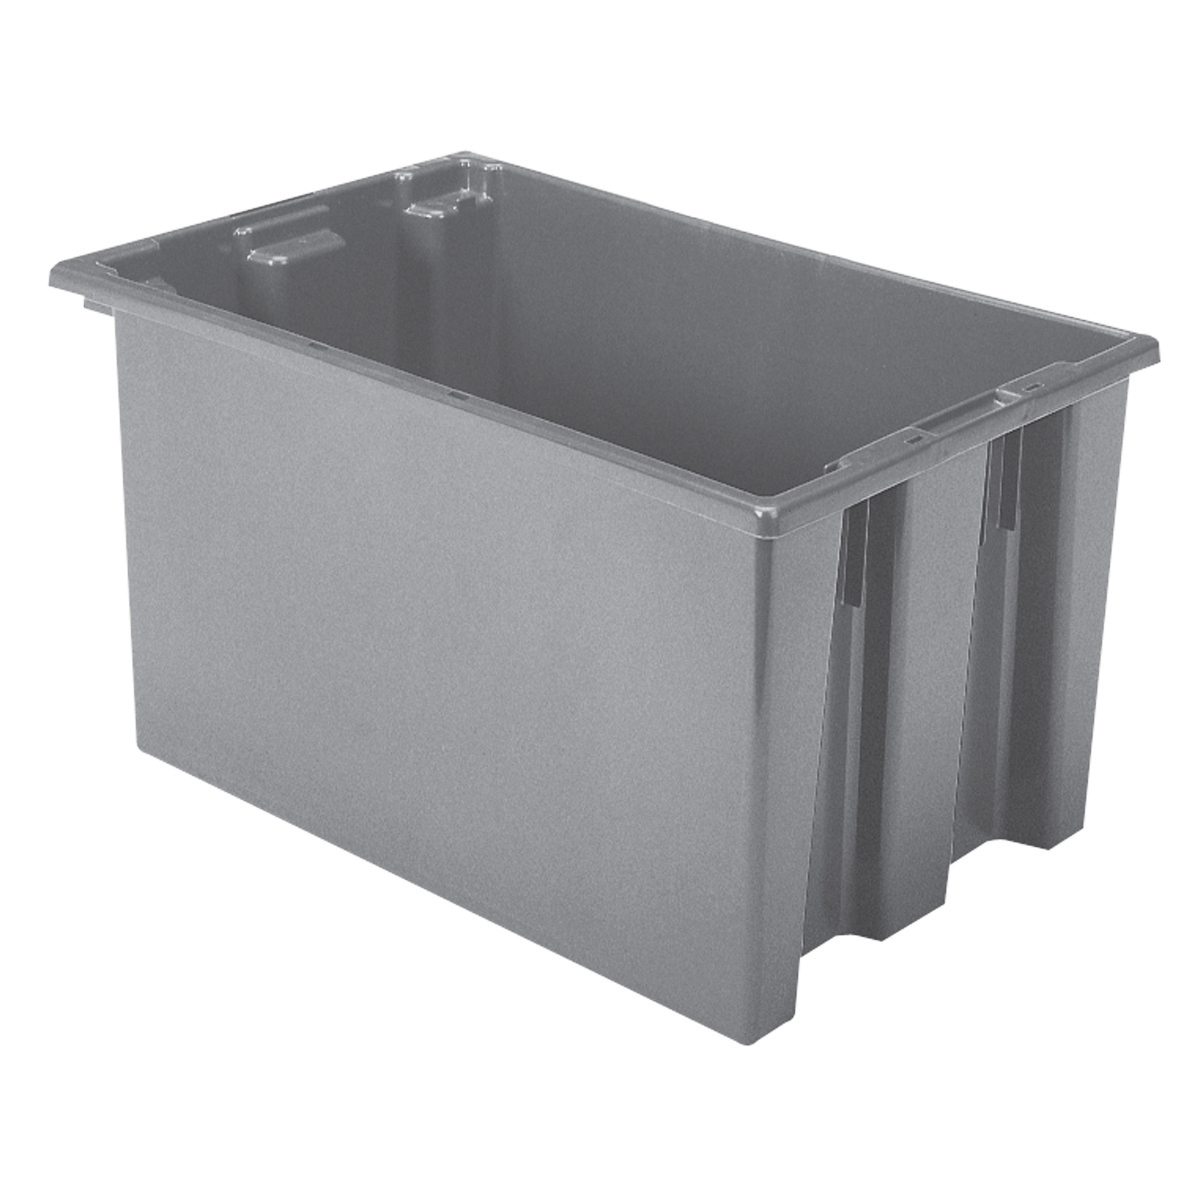 Nest & Stack Tote 23-1/2 x 15-1/2 x 12, Gray (35240GREY).  This item sold in carton quantities of 3.